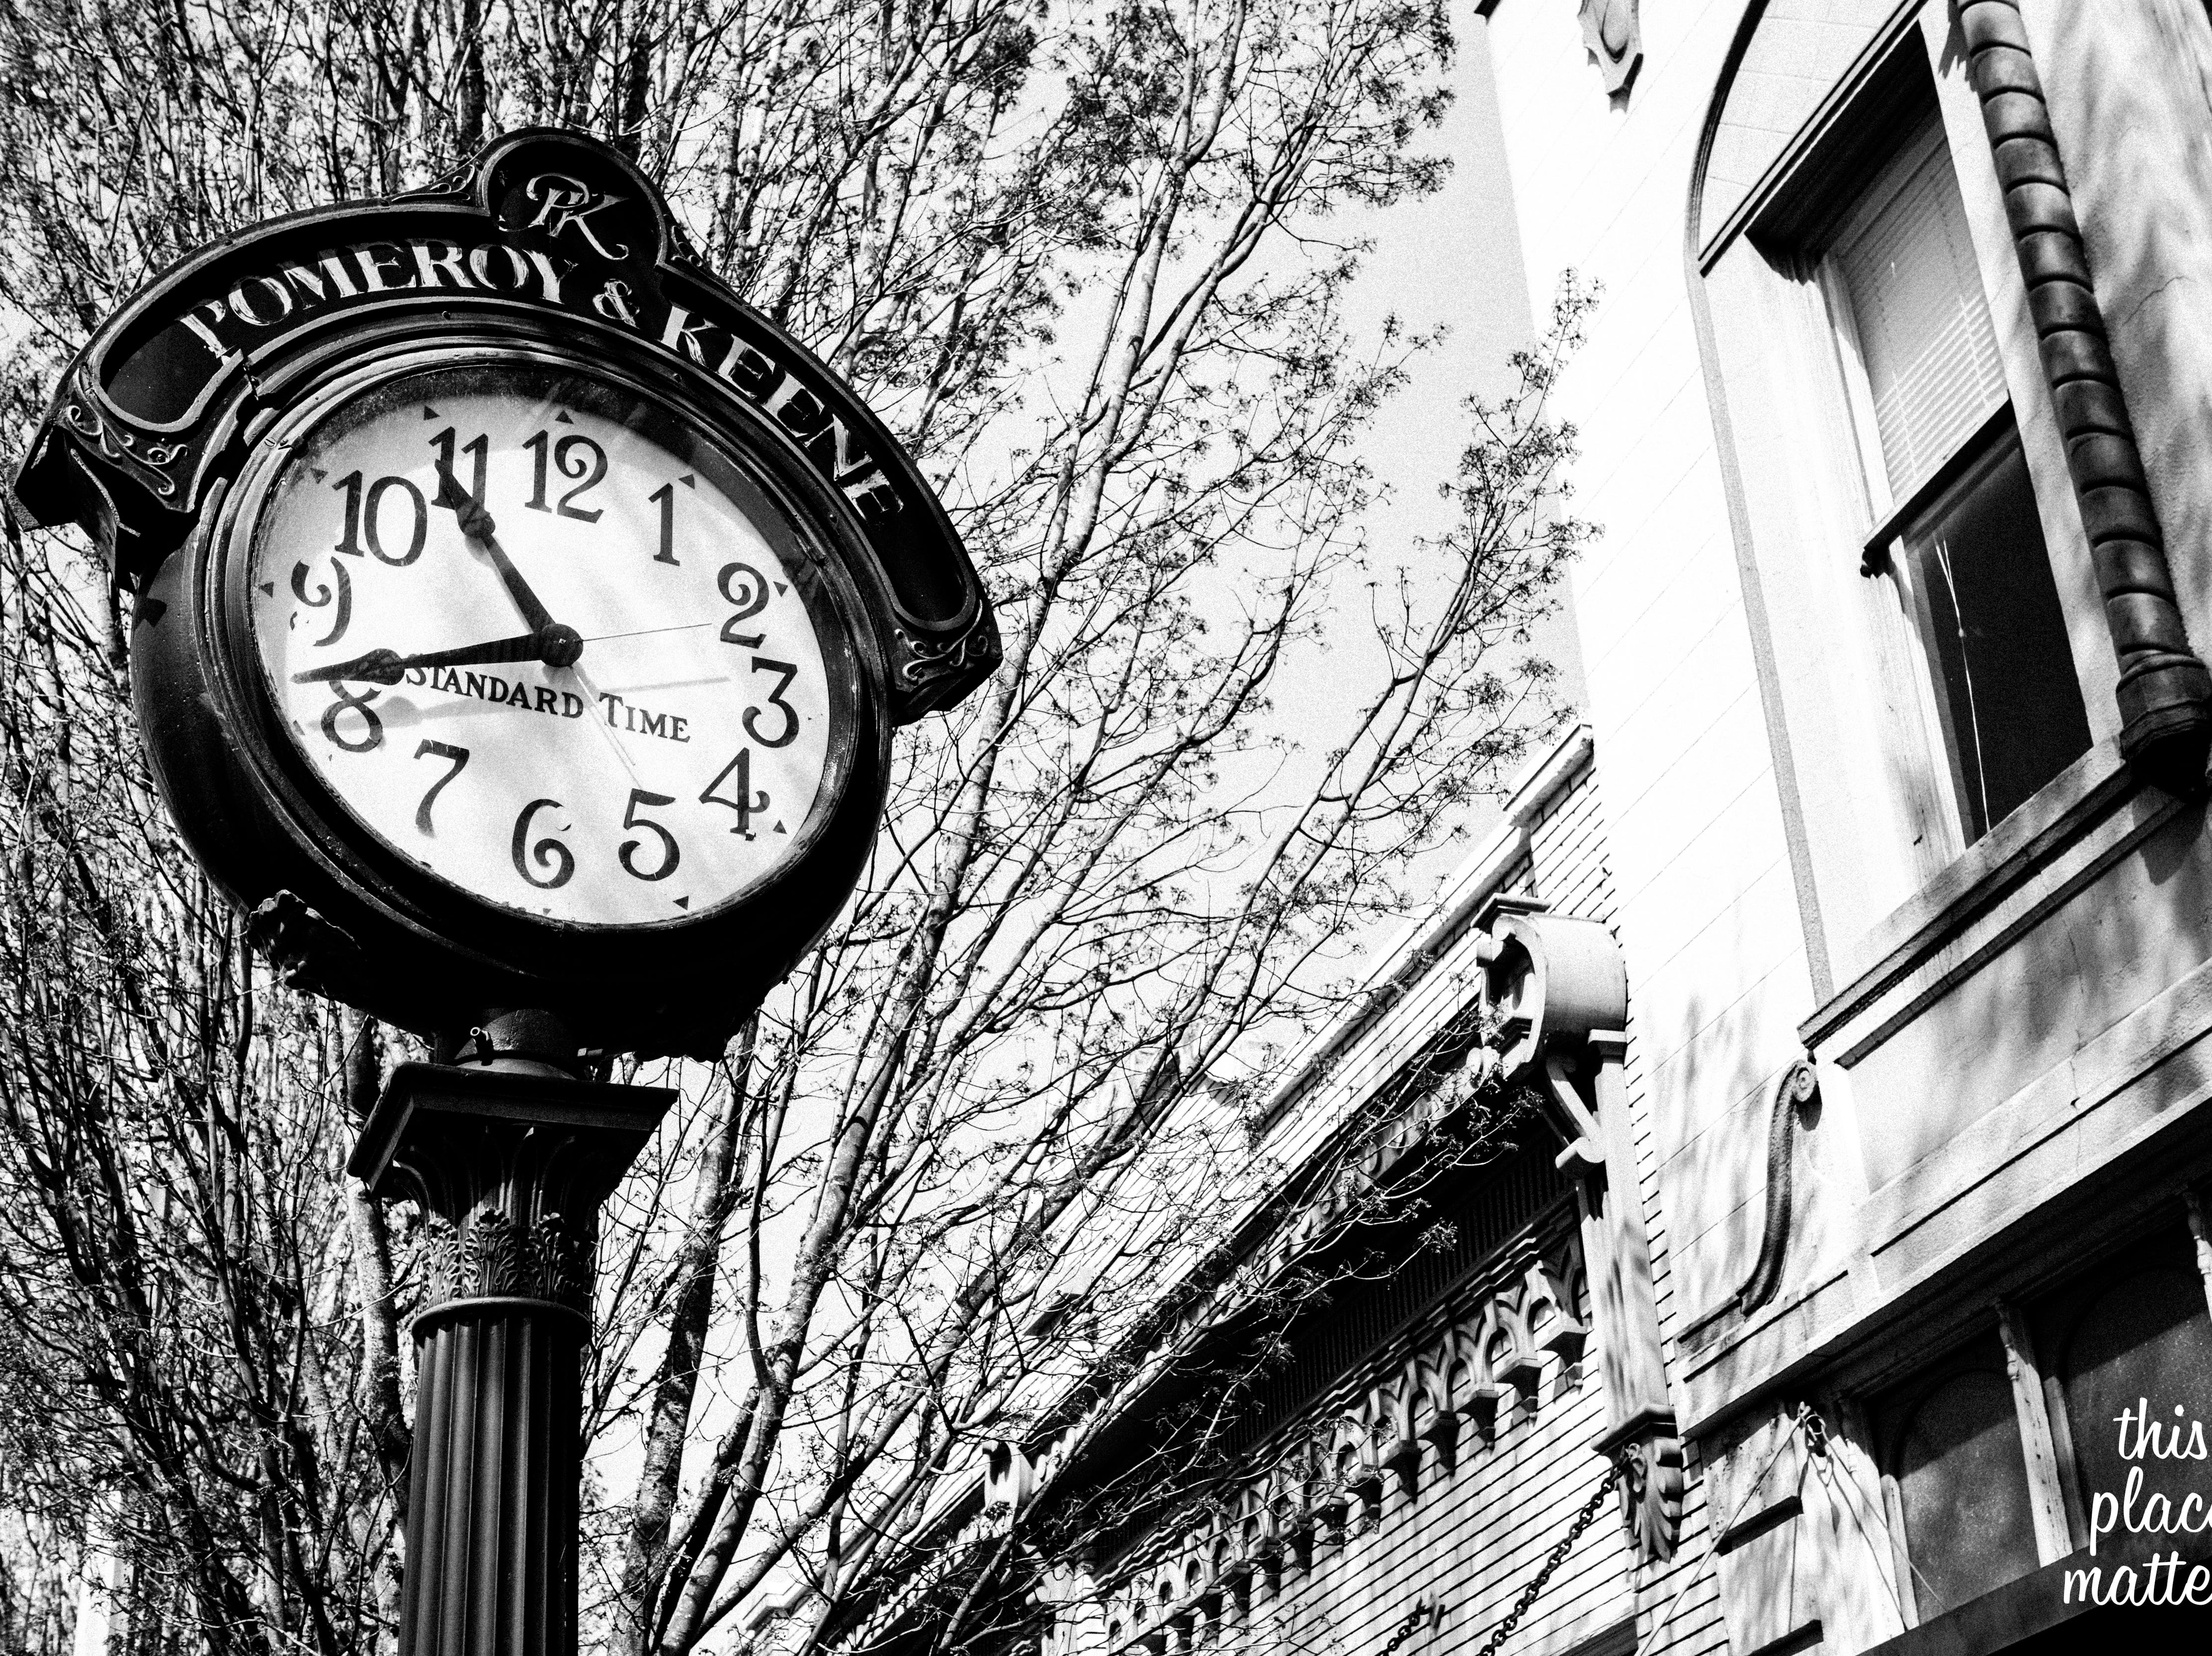 This photograph of the Pomeroy & Keene Clock, by Holly Hayes, won first place in the Best Historic Neighborhood Category in 2018.